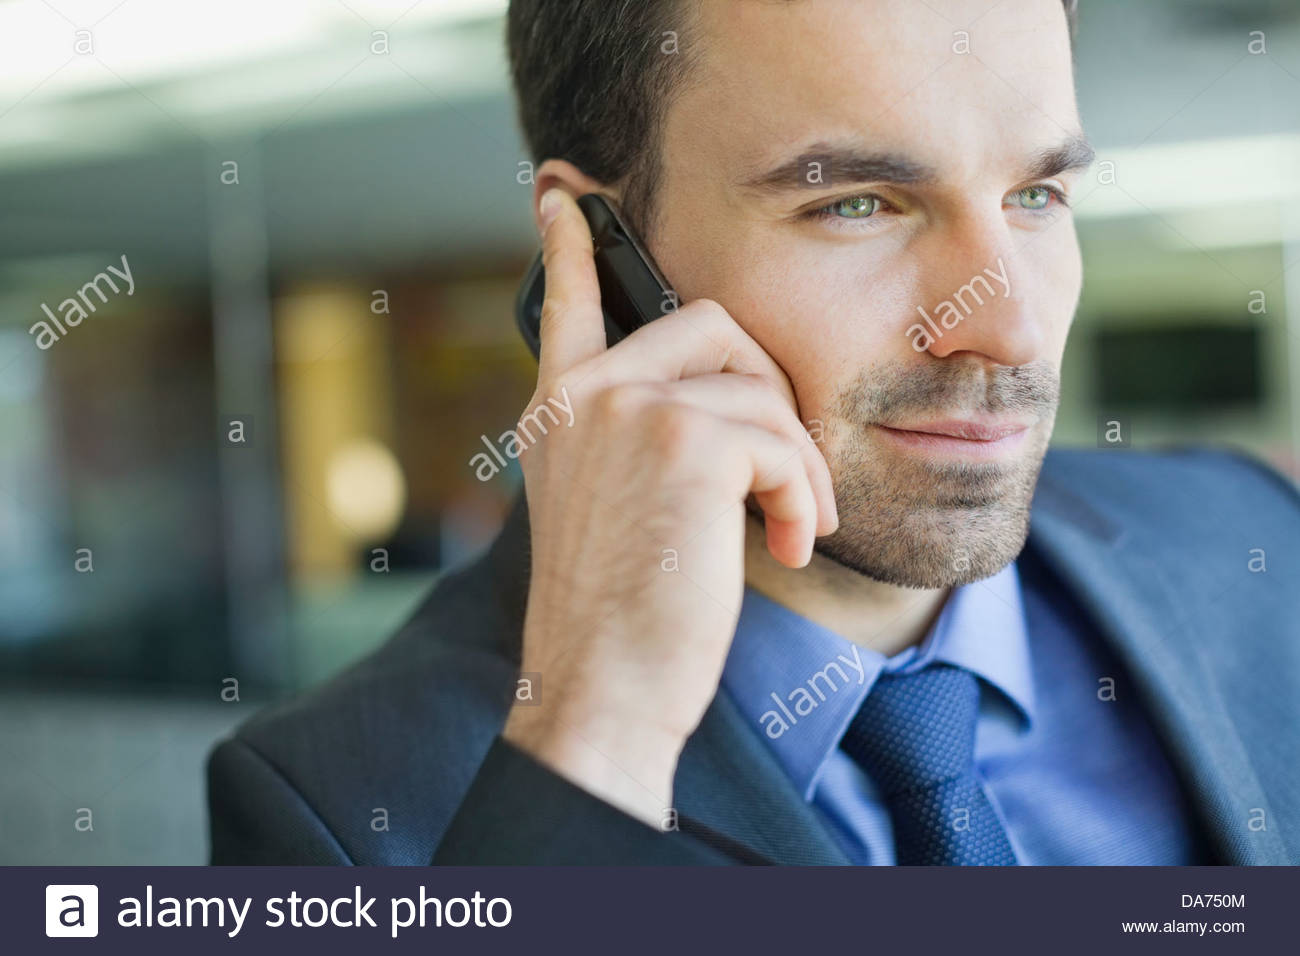 Close-up of businessman using mobile phone Stock Photo